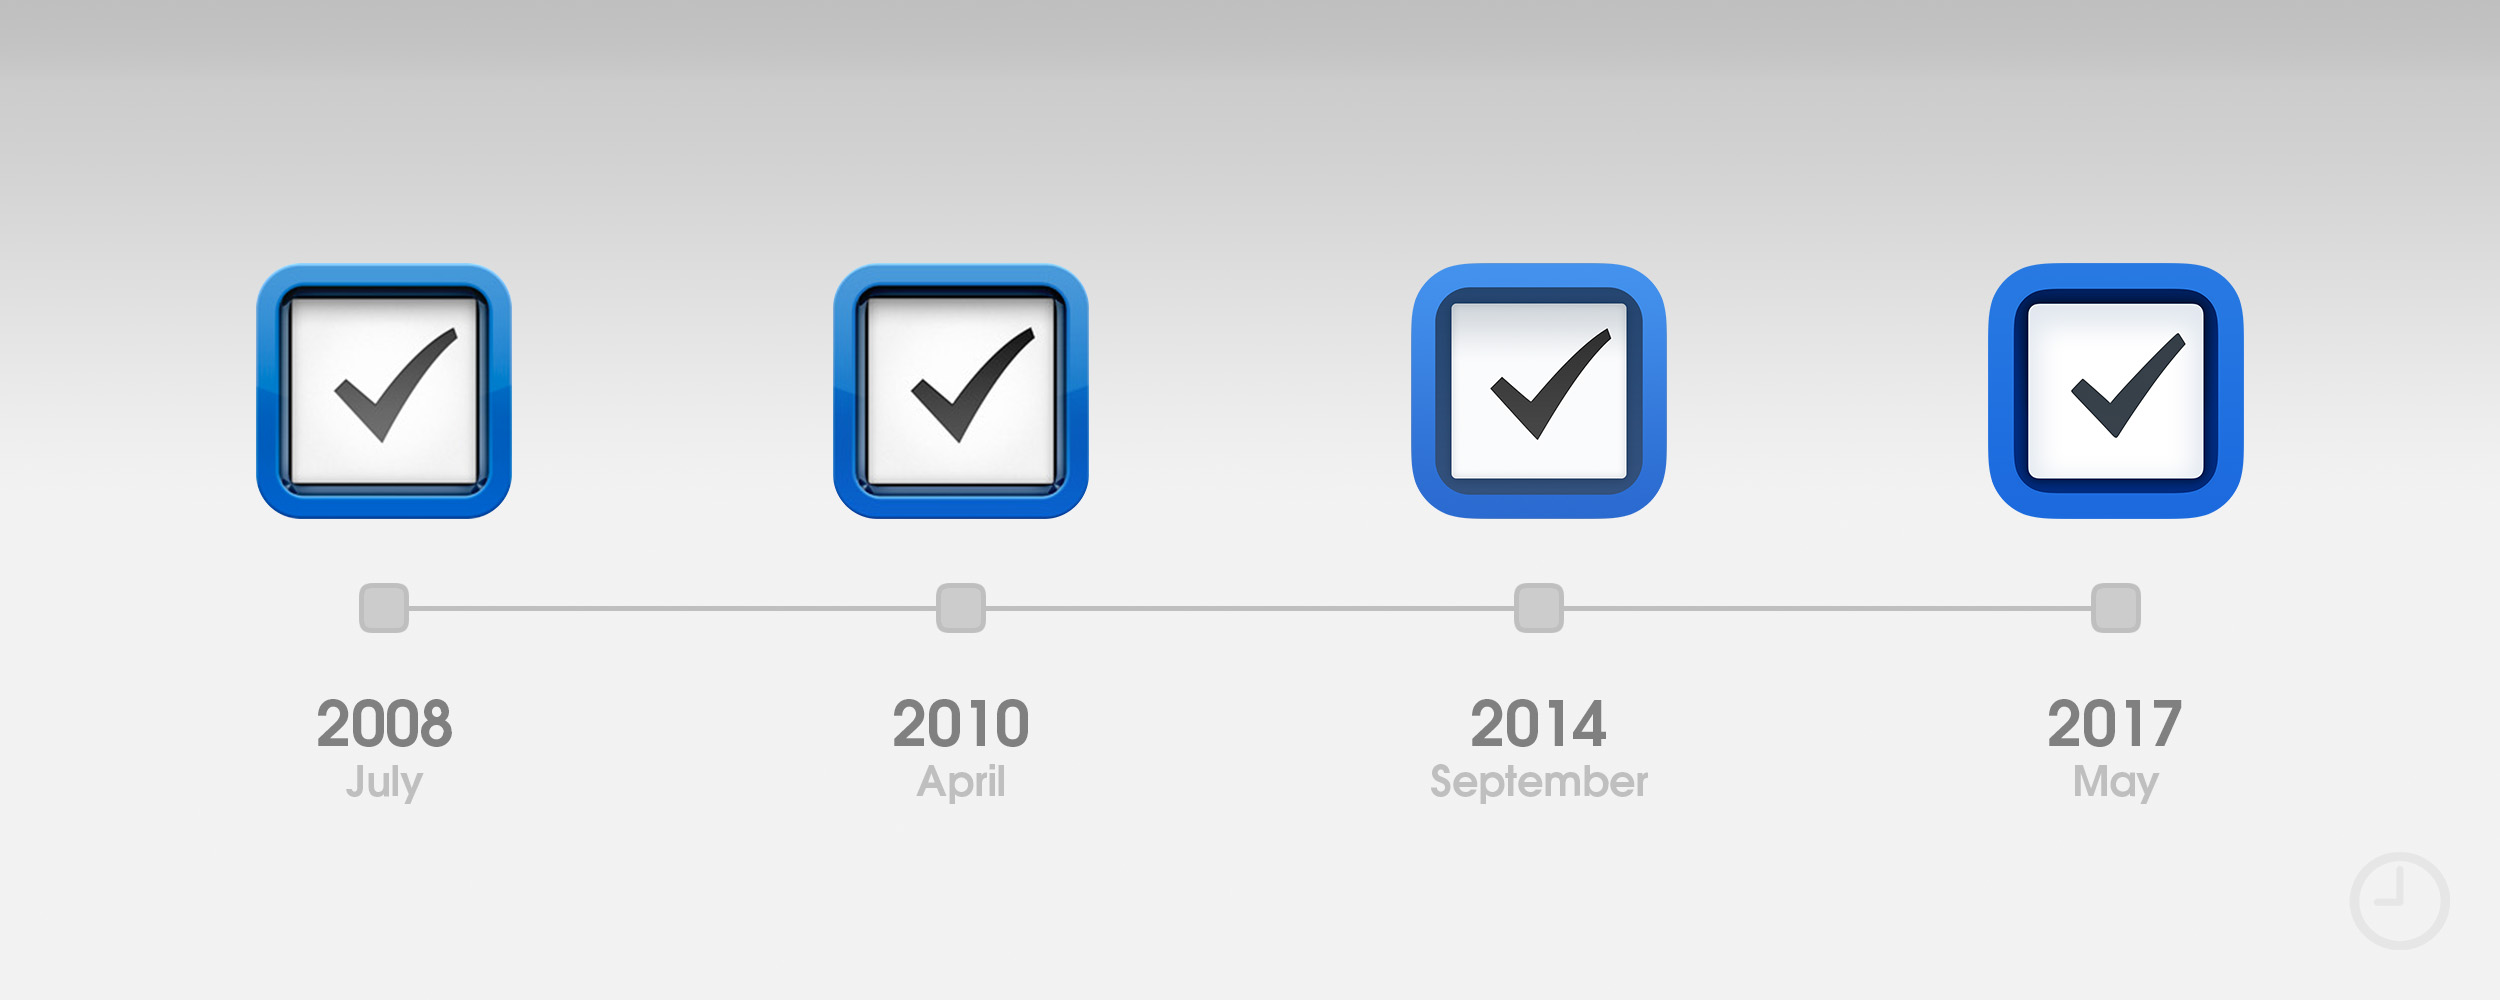 10 years of the App Store: The design evolution of the